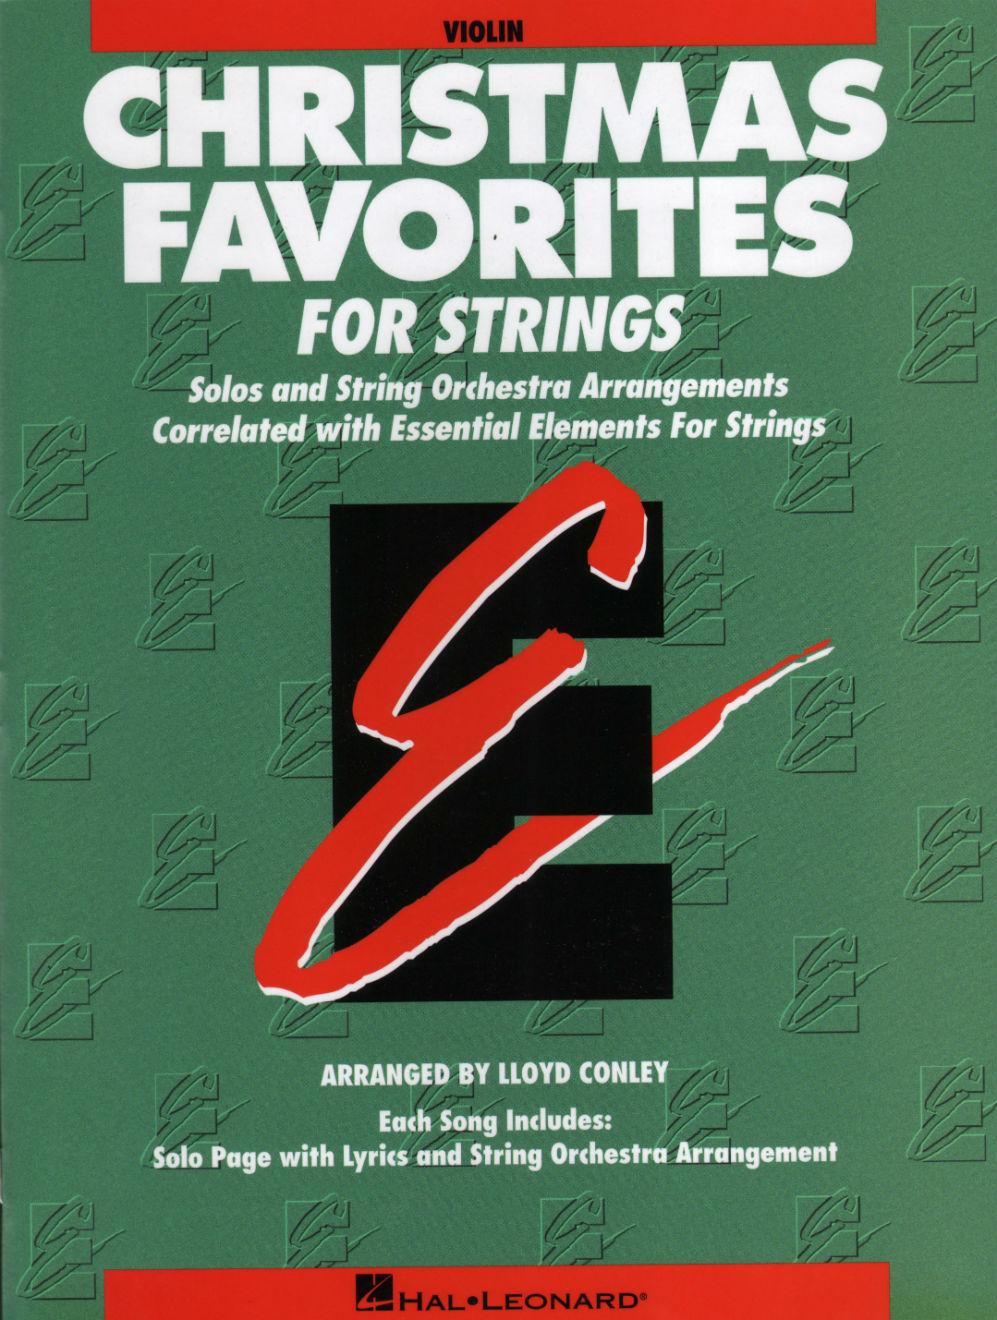 Christmas Sheetmusic For Strings - Part Three: Solos with Audio Accompaniment